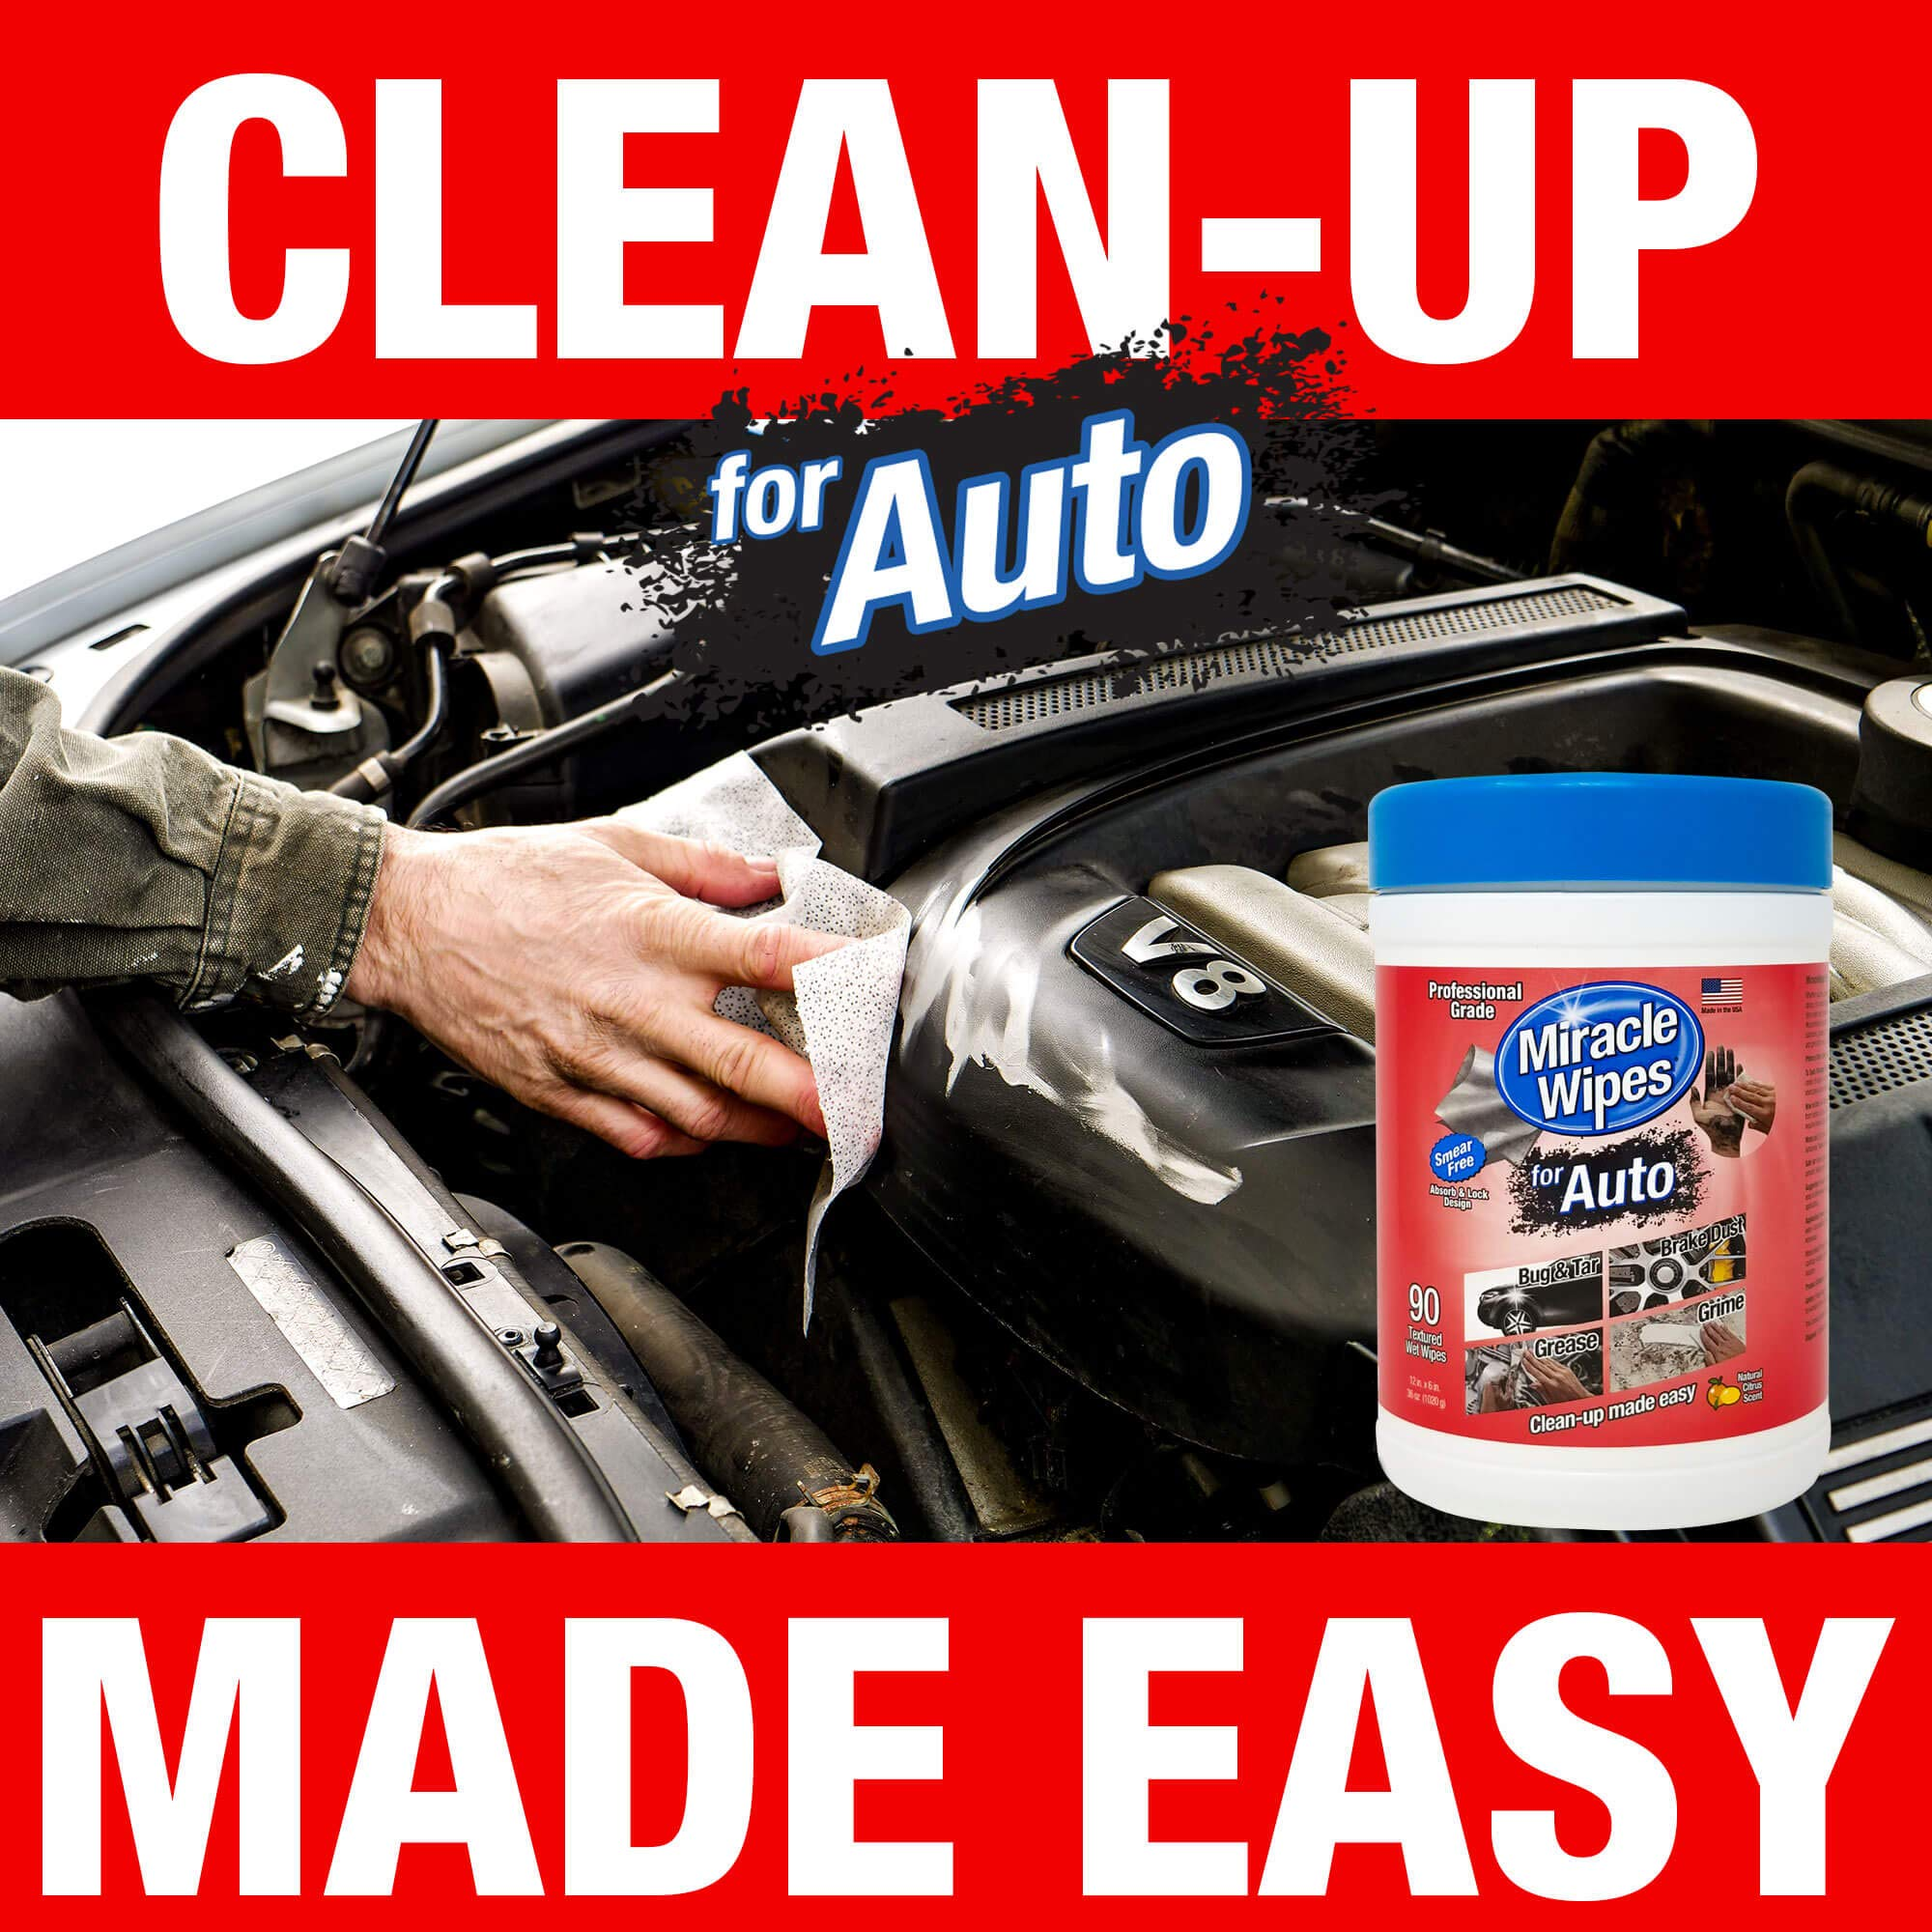 MiracleWipes for Automotive - All Purpose Cleaner, Hands, Interior, Exterior, Detailing - Removes Grease, Lubricants, Sticky Adhesives, Grime, Dirt & More - Car Cleaning Supplies - 6 Pack (90 Count) by MiracleWipes (Image #6)